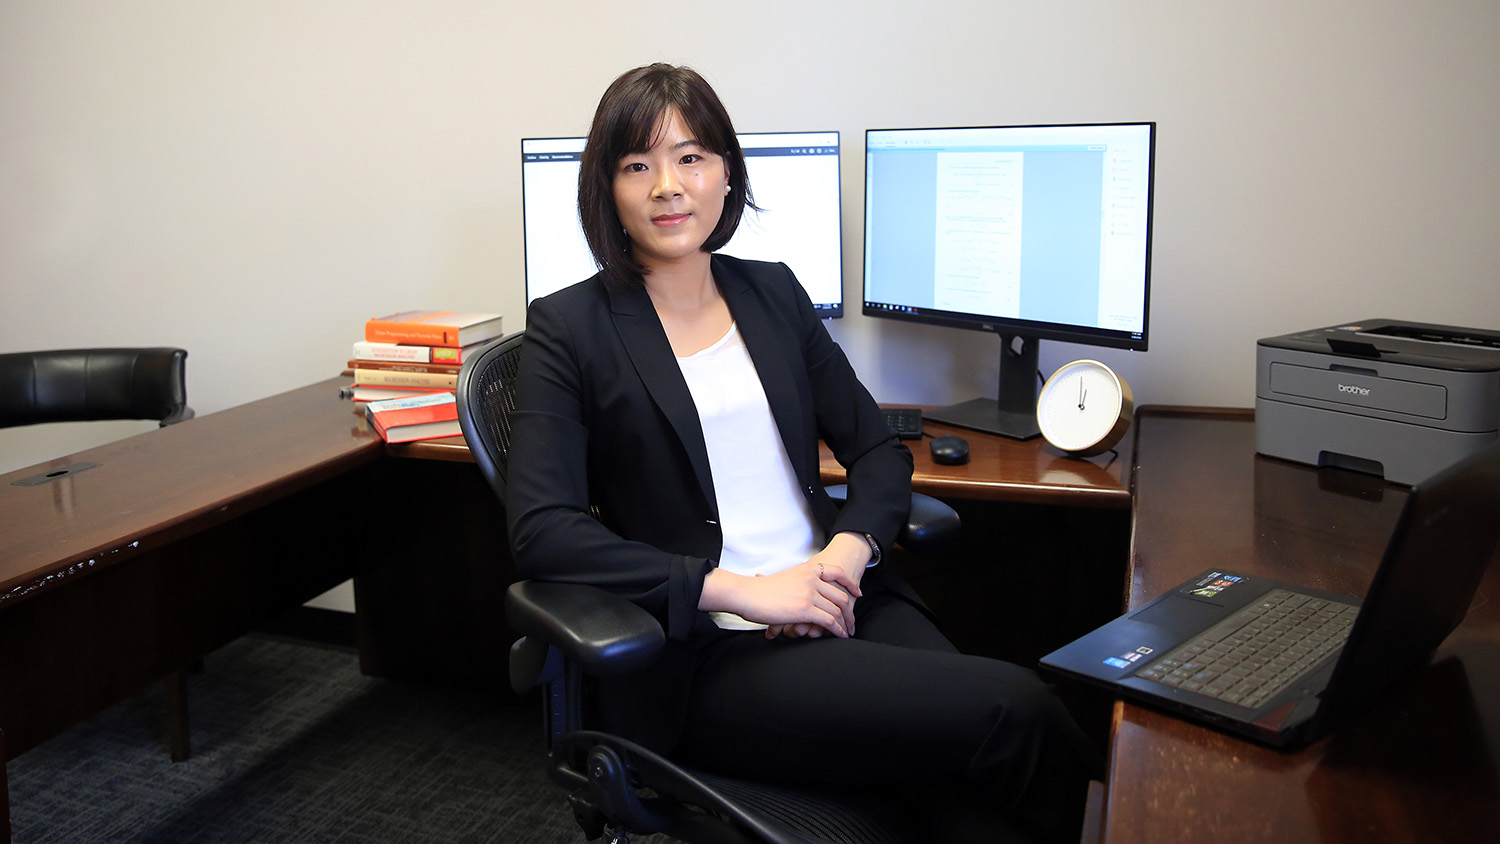 Dr. Mengmeng sitting in her office facing the camera